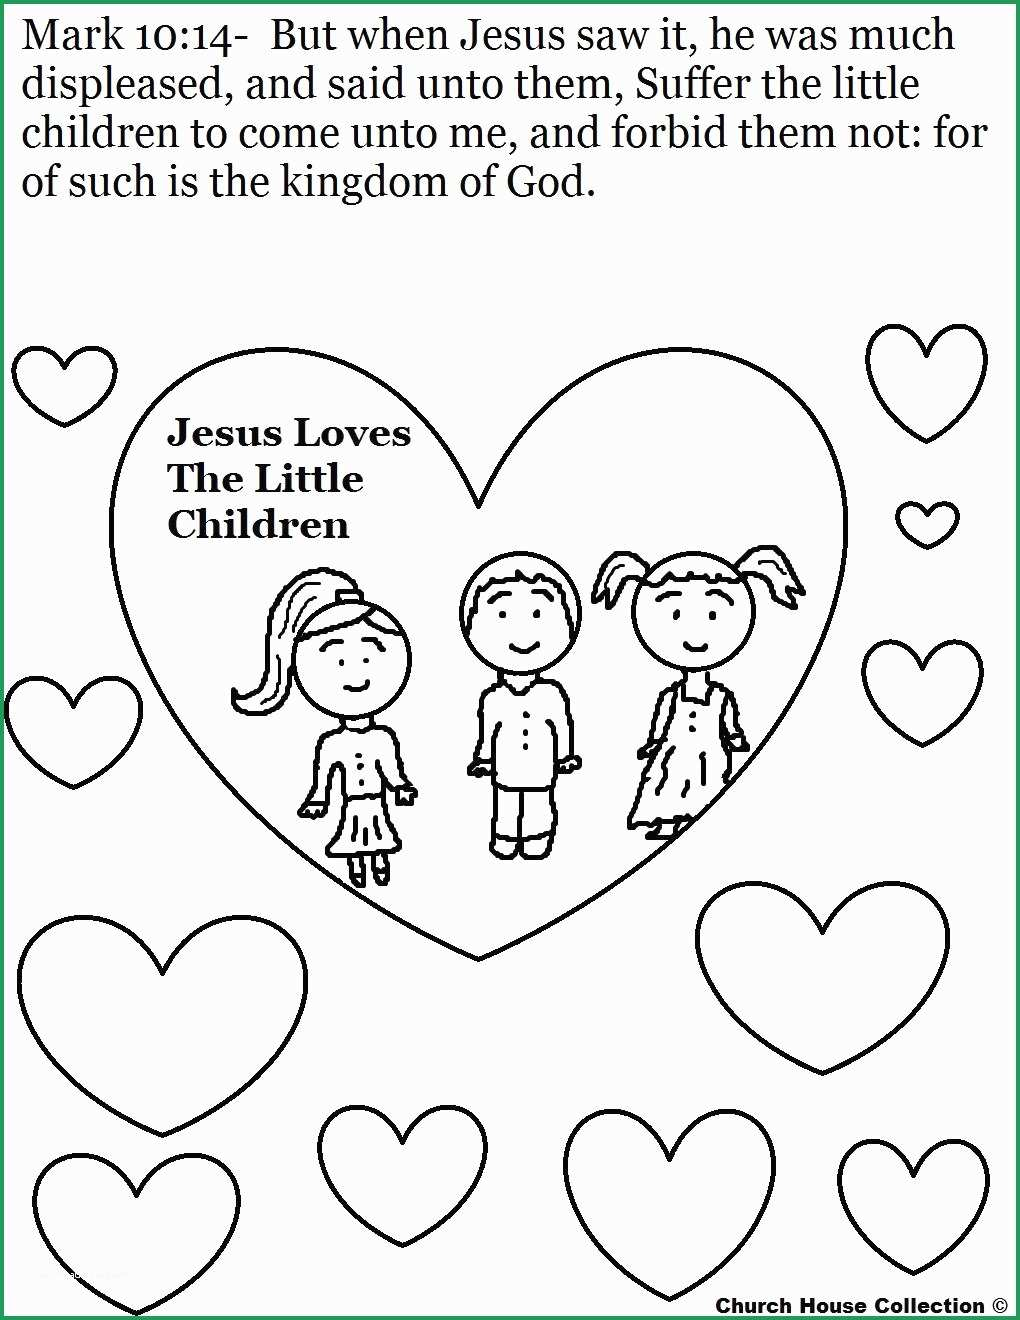 Jesus Loves Me Coloring Page God Loves Me Coloring Pages Free Fresh Jesus Loves The Little